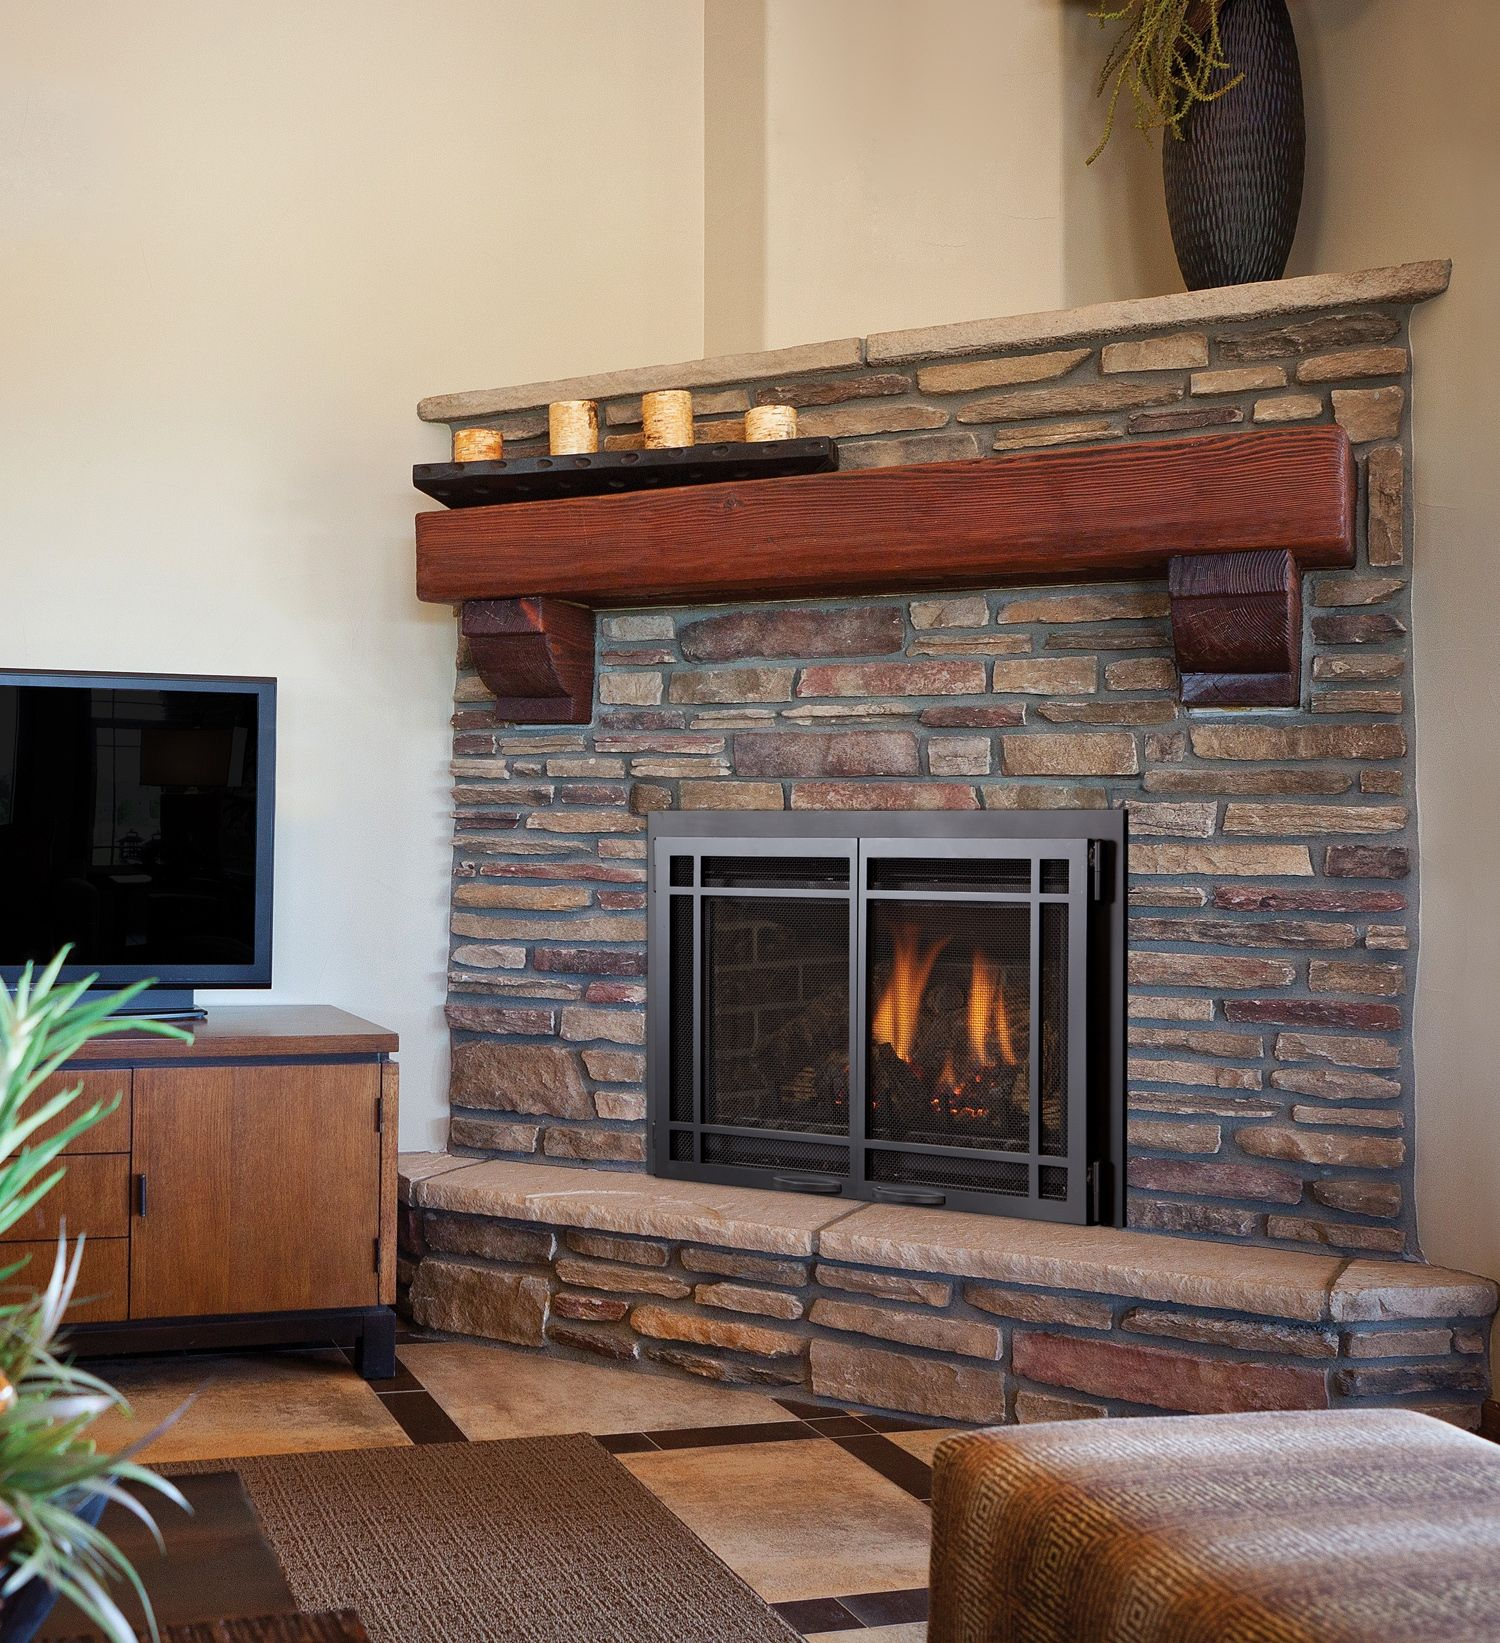 This Is Our Chaska 25 Gas Insert Fireplace For More Information